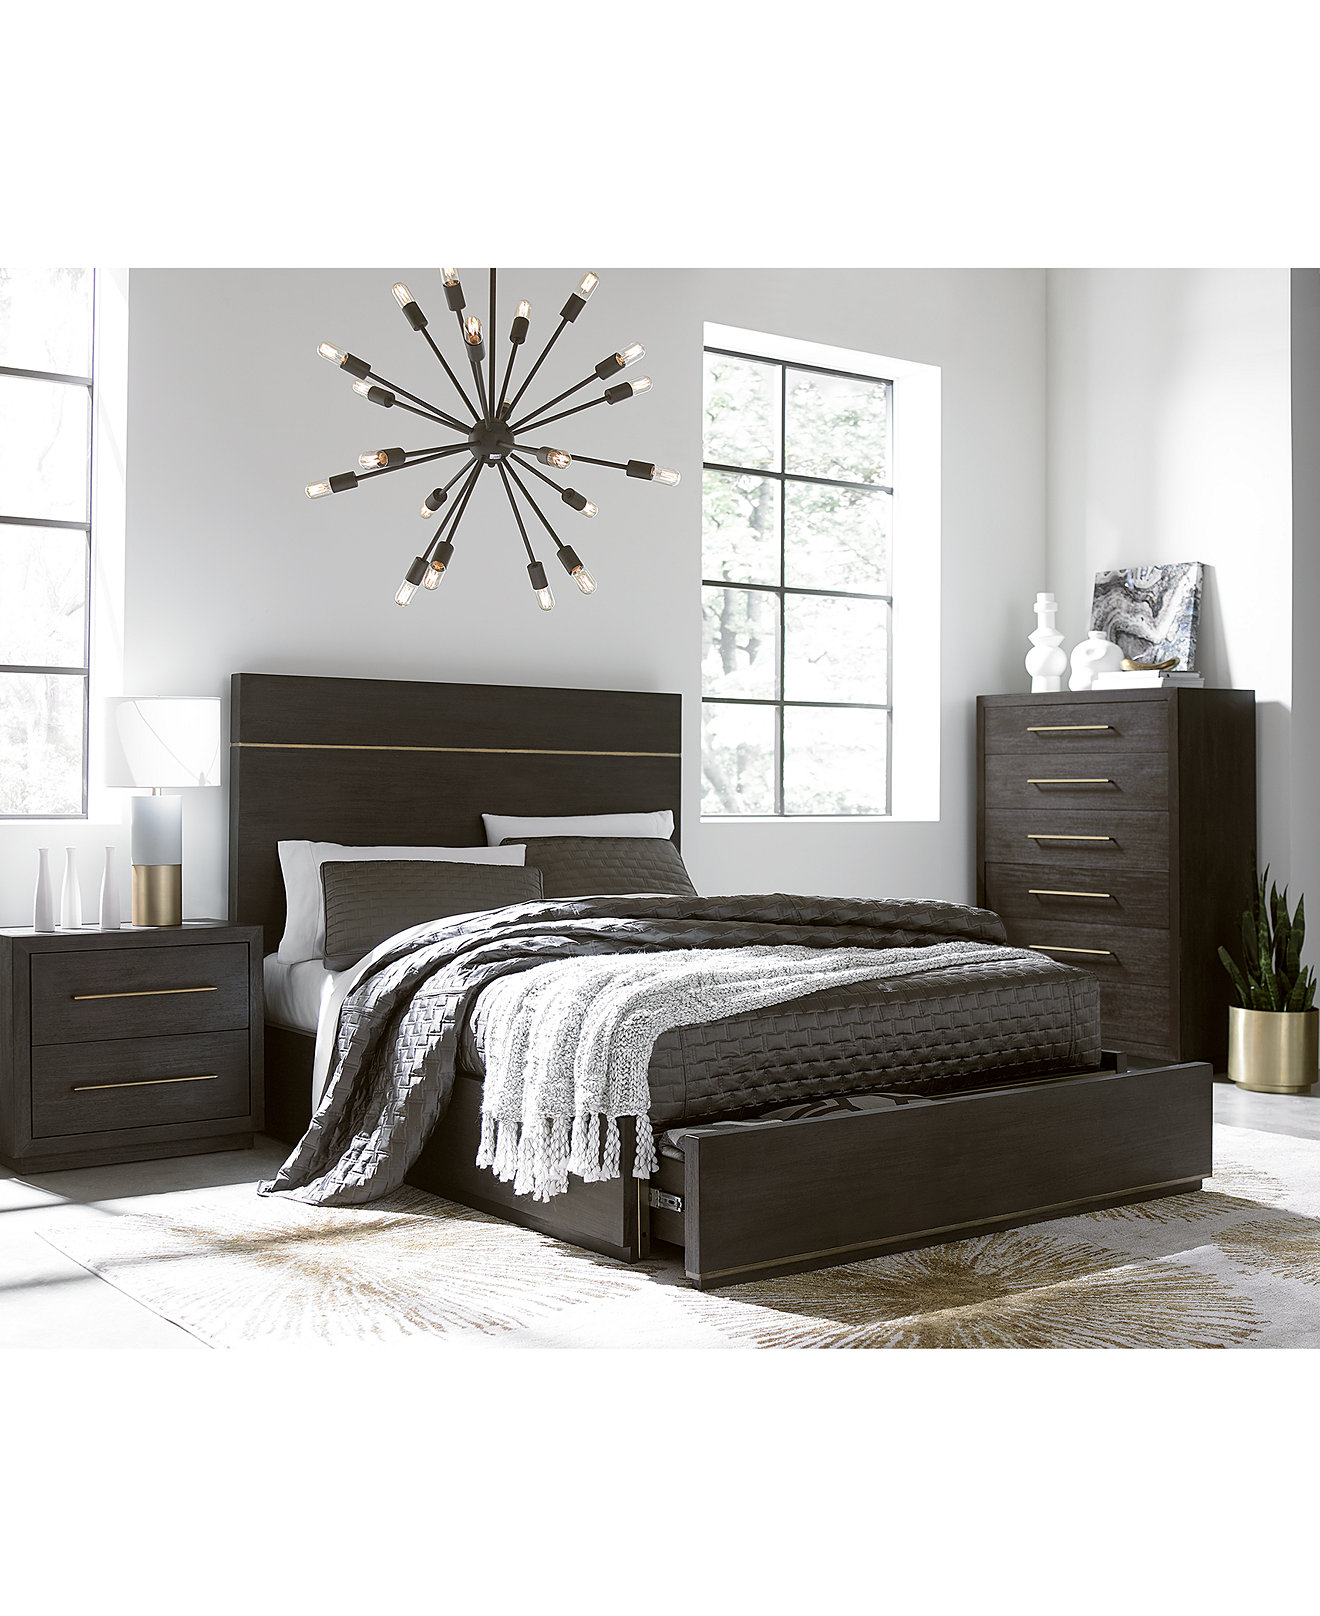 Luxury Grey Wood Bedroom Furniture Proinformatix